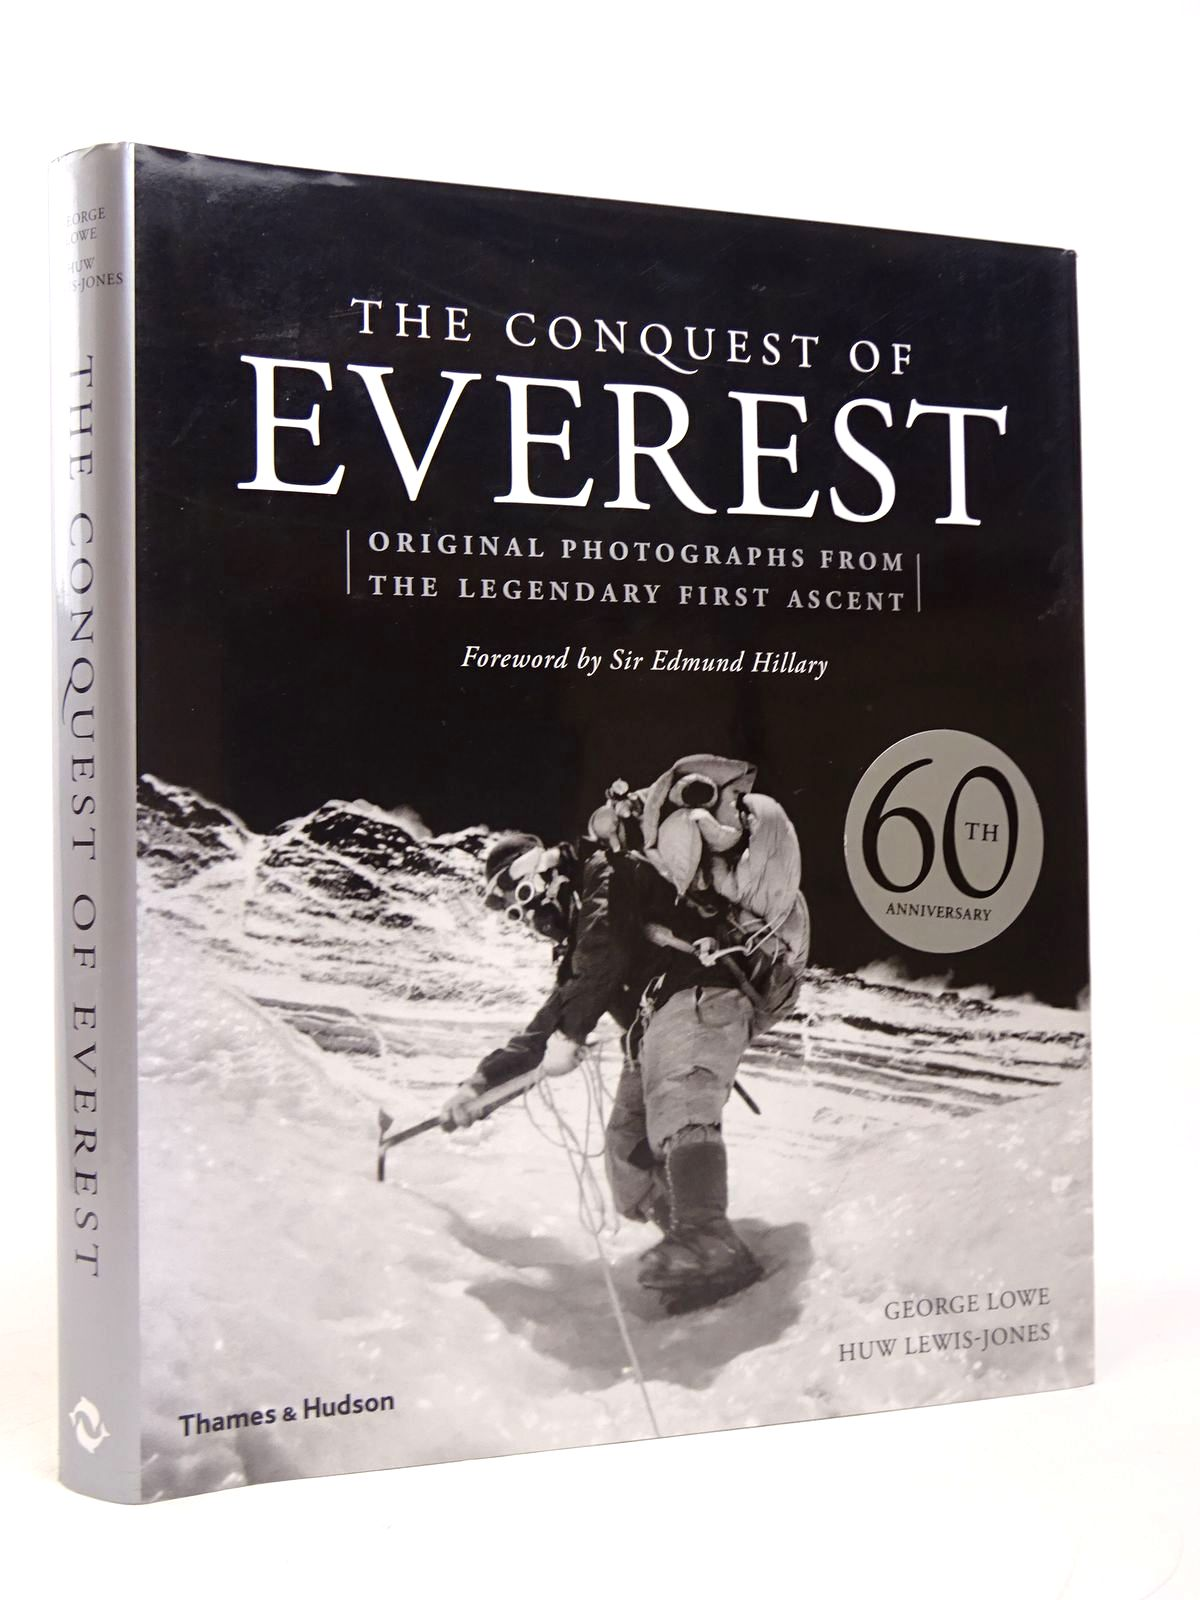 Photo of THE CONQUEST OF EVEREST: ORIGINAL PHOTOGRAPHS FROM THE LEGENDARY FIRST ASCENT written by Lowe, George Lewis-Jones, Huw published by Thames and Hudson (STOCK CODE: 1817692)  for sale by Stella & Rose's Books